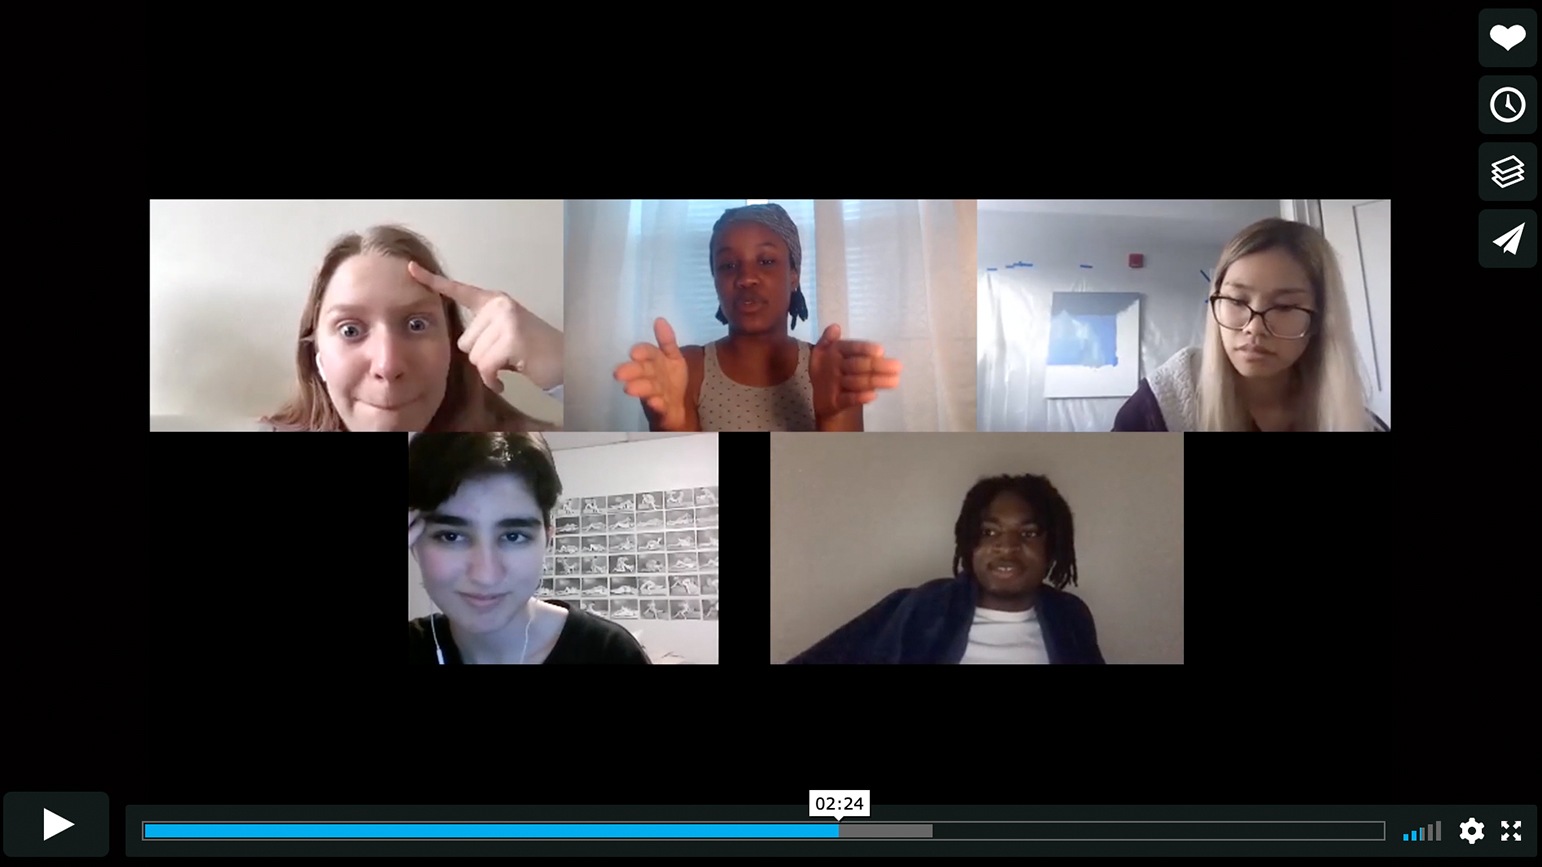 Still from a video showing five people talking on Zoom